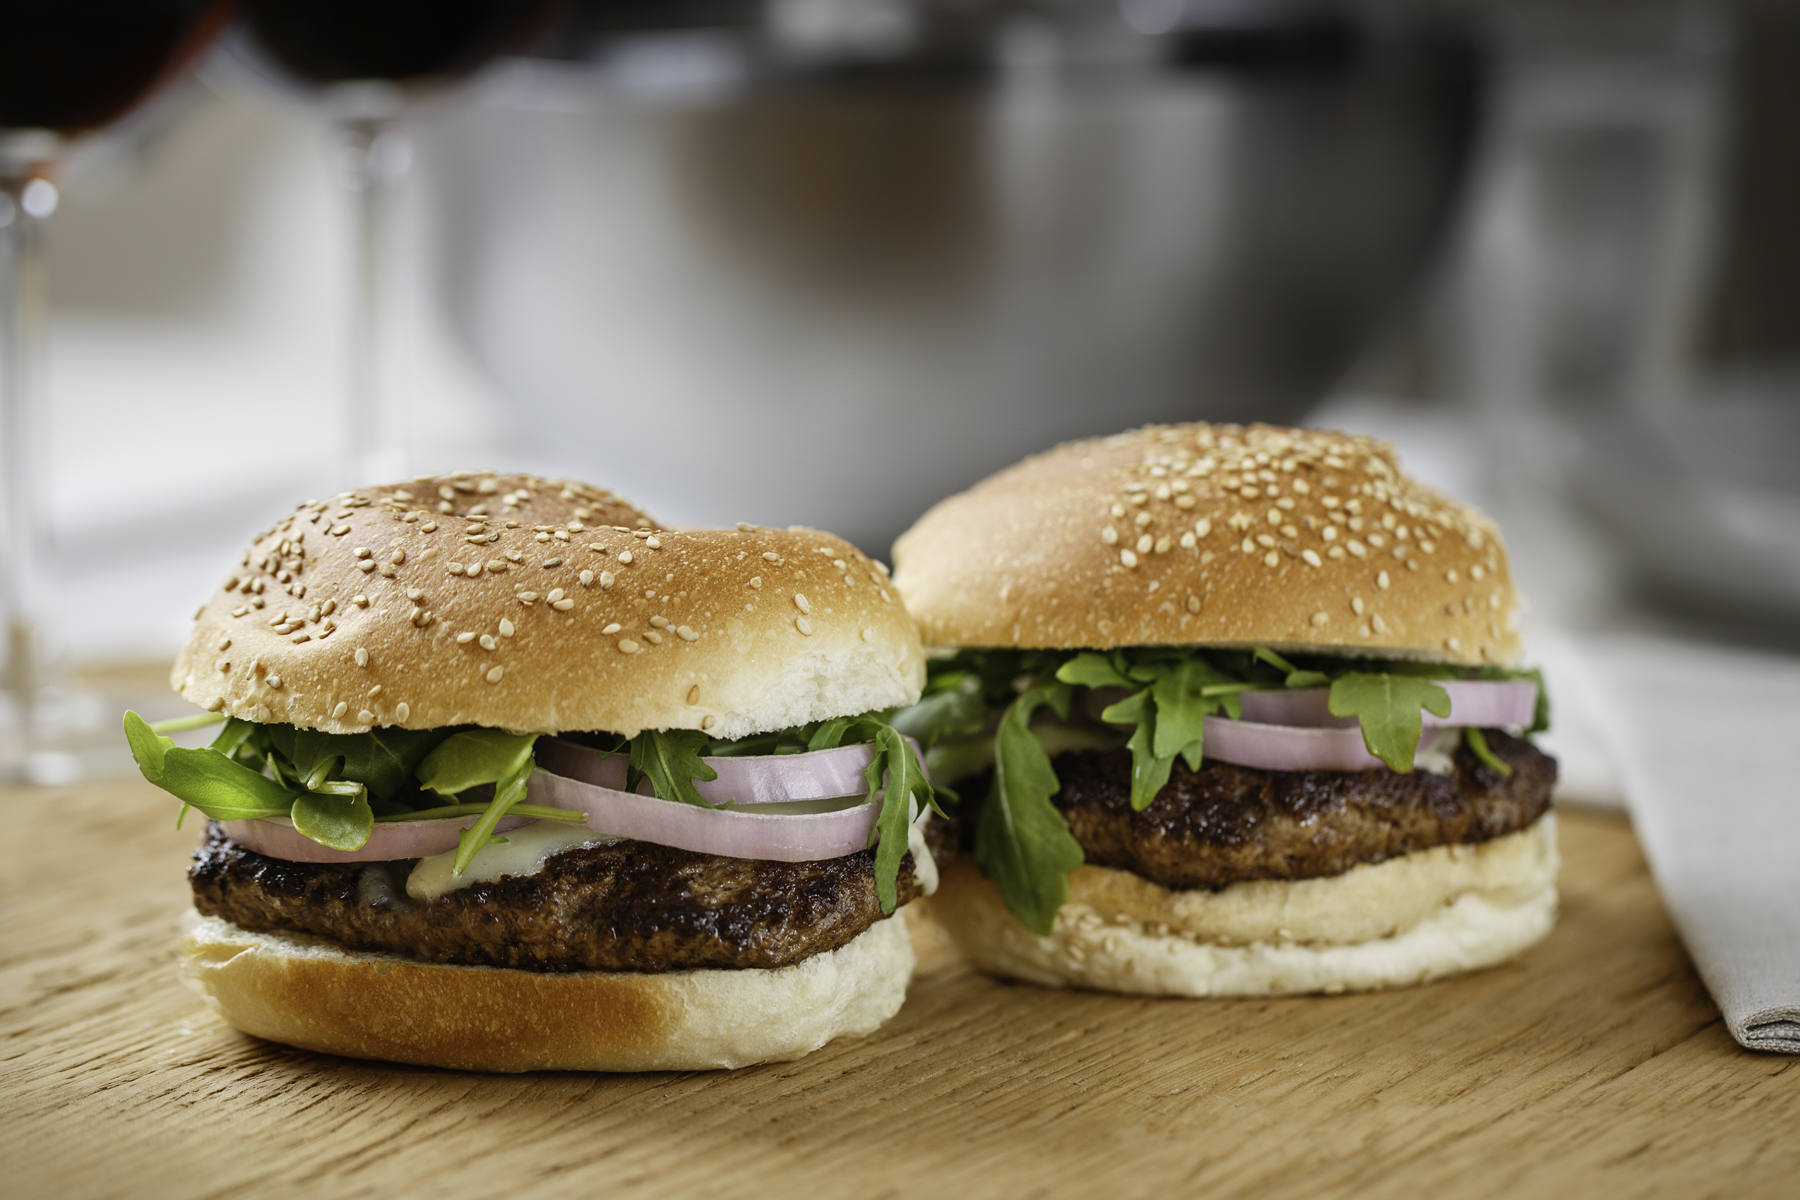 Burger_Maker_Hamburgers_Patties_Ground_Beef_9K2A3522-25